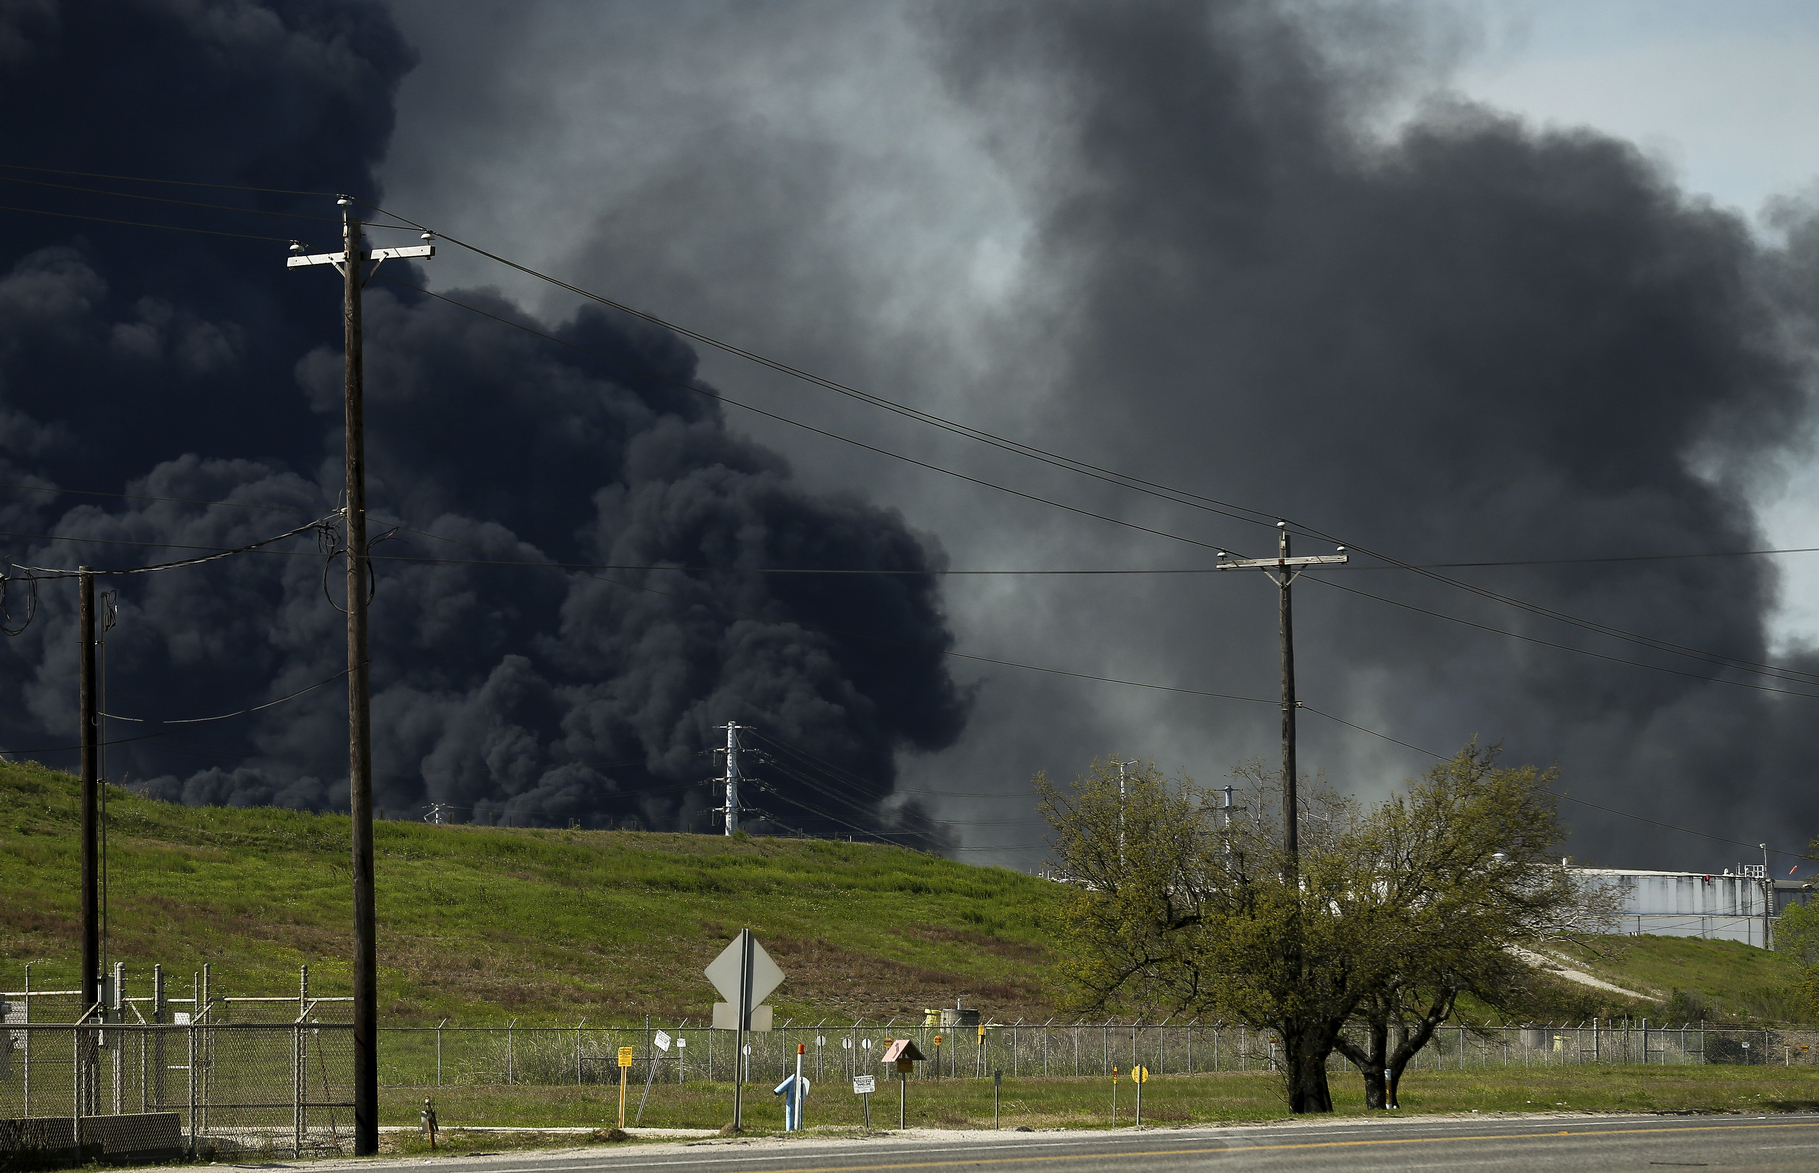 Petrochemical_Fire-Texas_02356-159532.jpg26982809